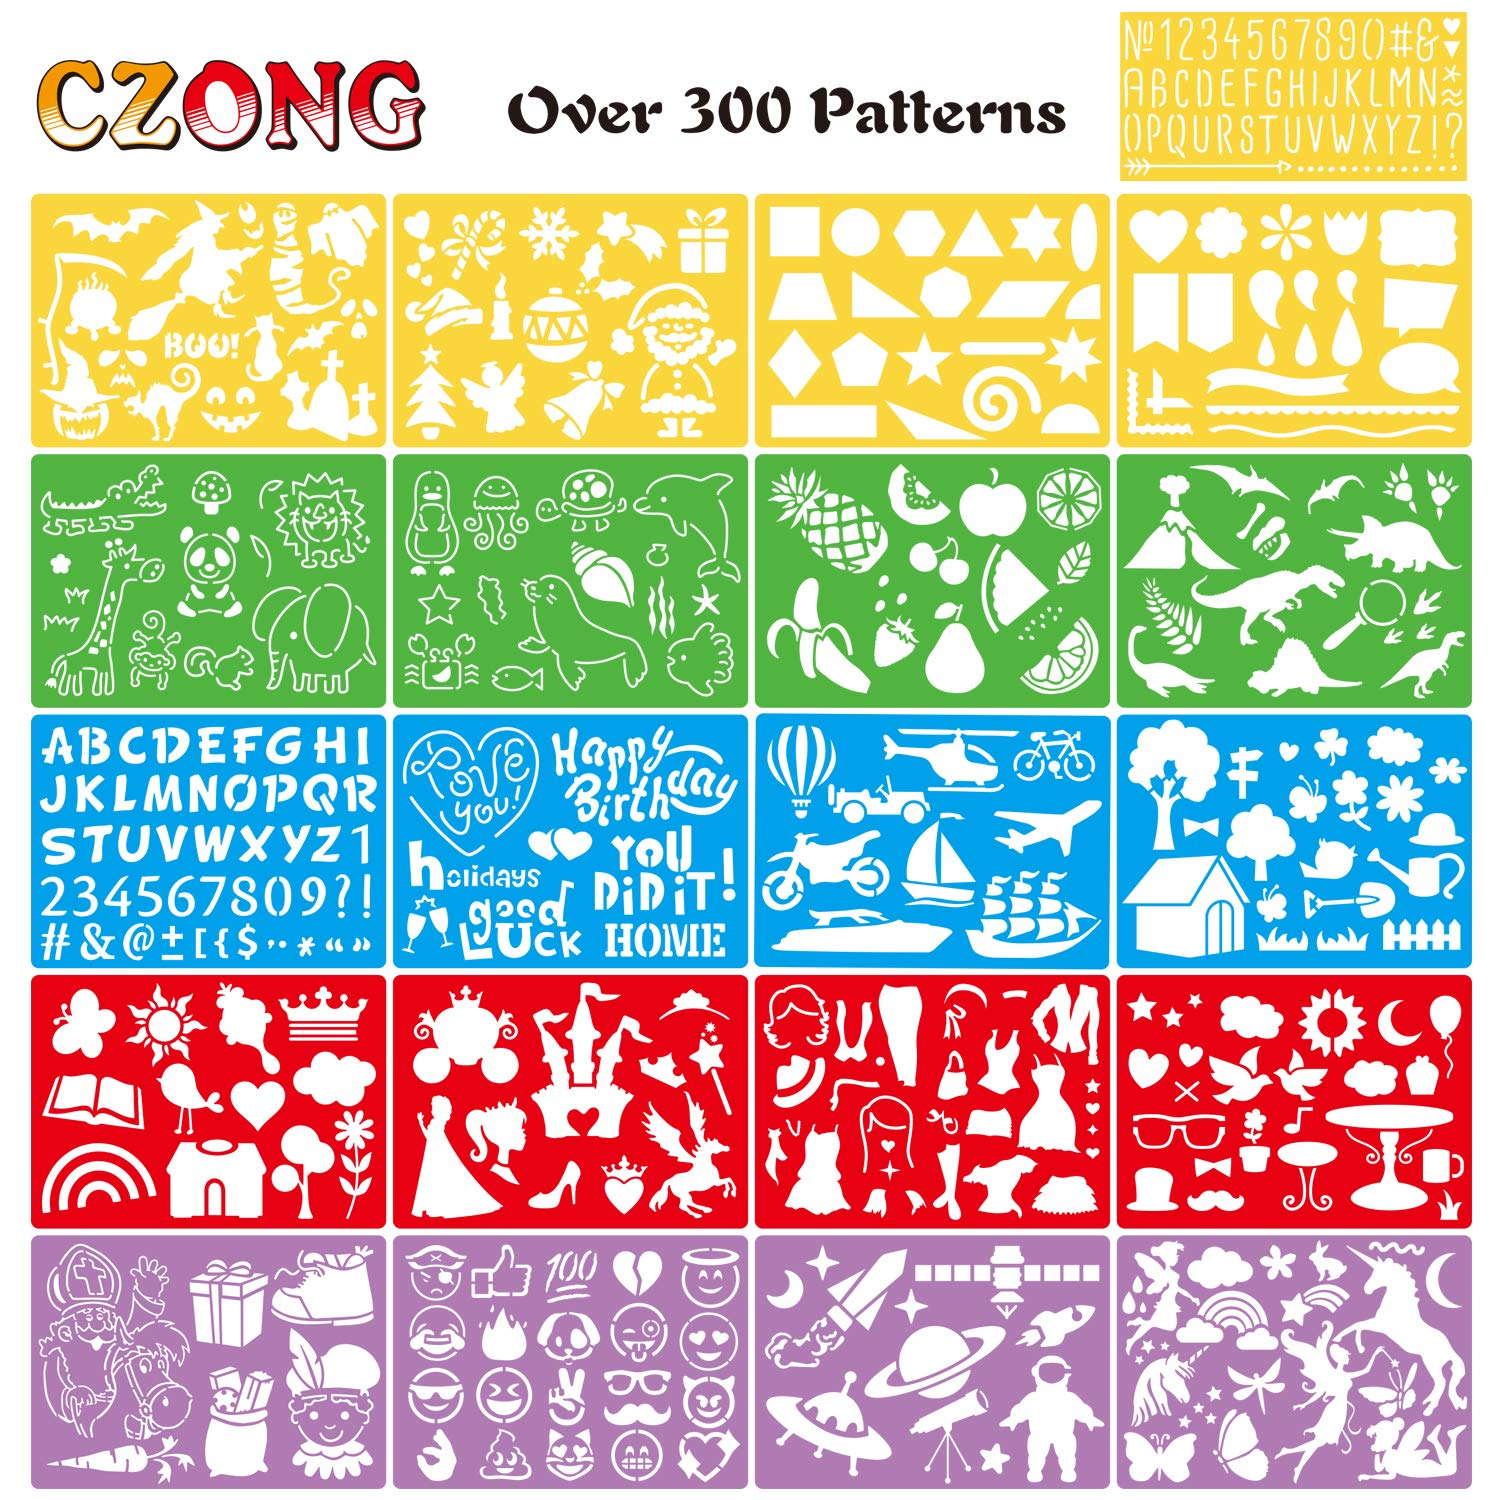 CZONG 21 Pieces Drawing Stencils Set for Kids Over 300 Different Patterns To Draw Imaginative Children's Stories, Bullet Journal Stencil for Notebook, Diary, DIY Drawing Template with 1 Storage Bag by CZONG